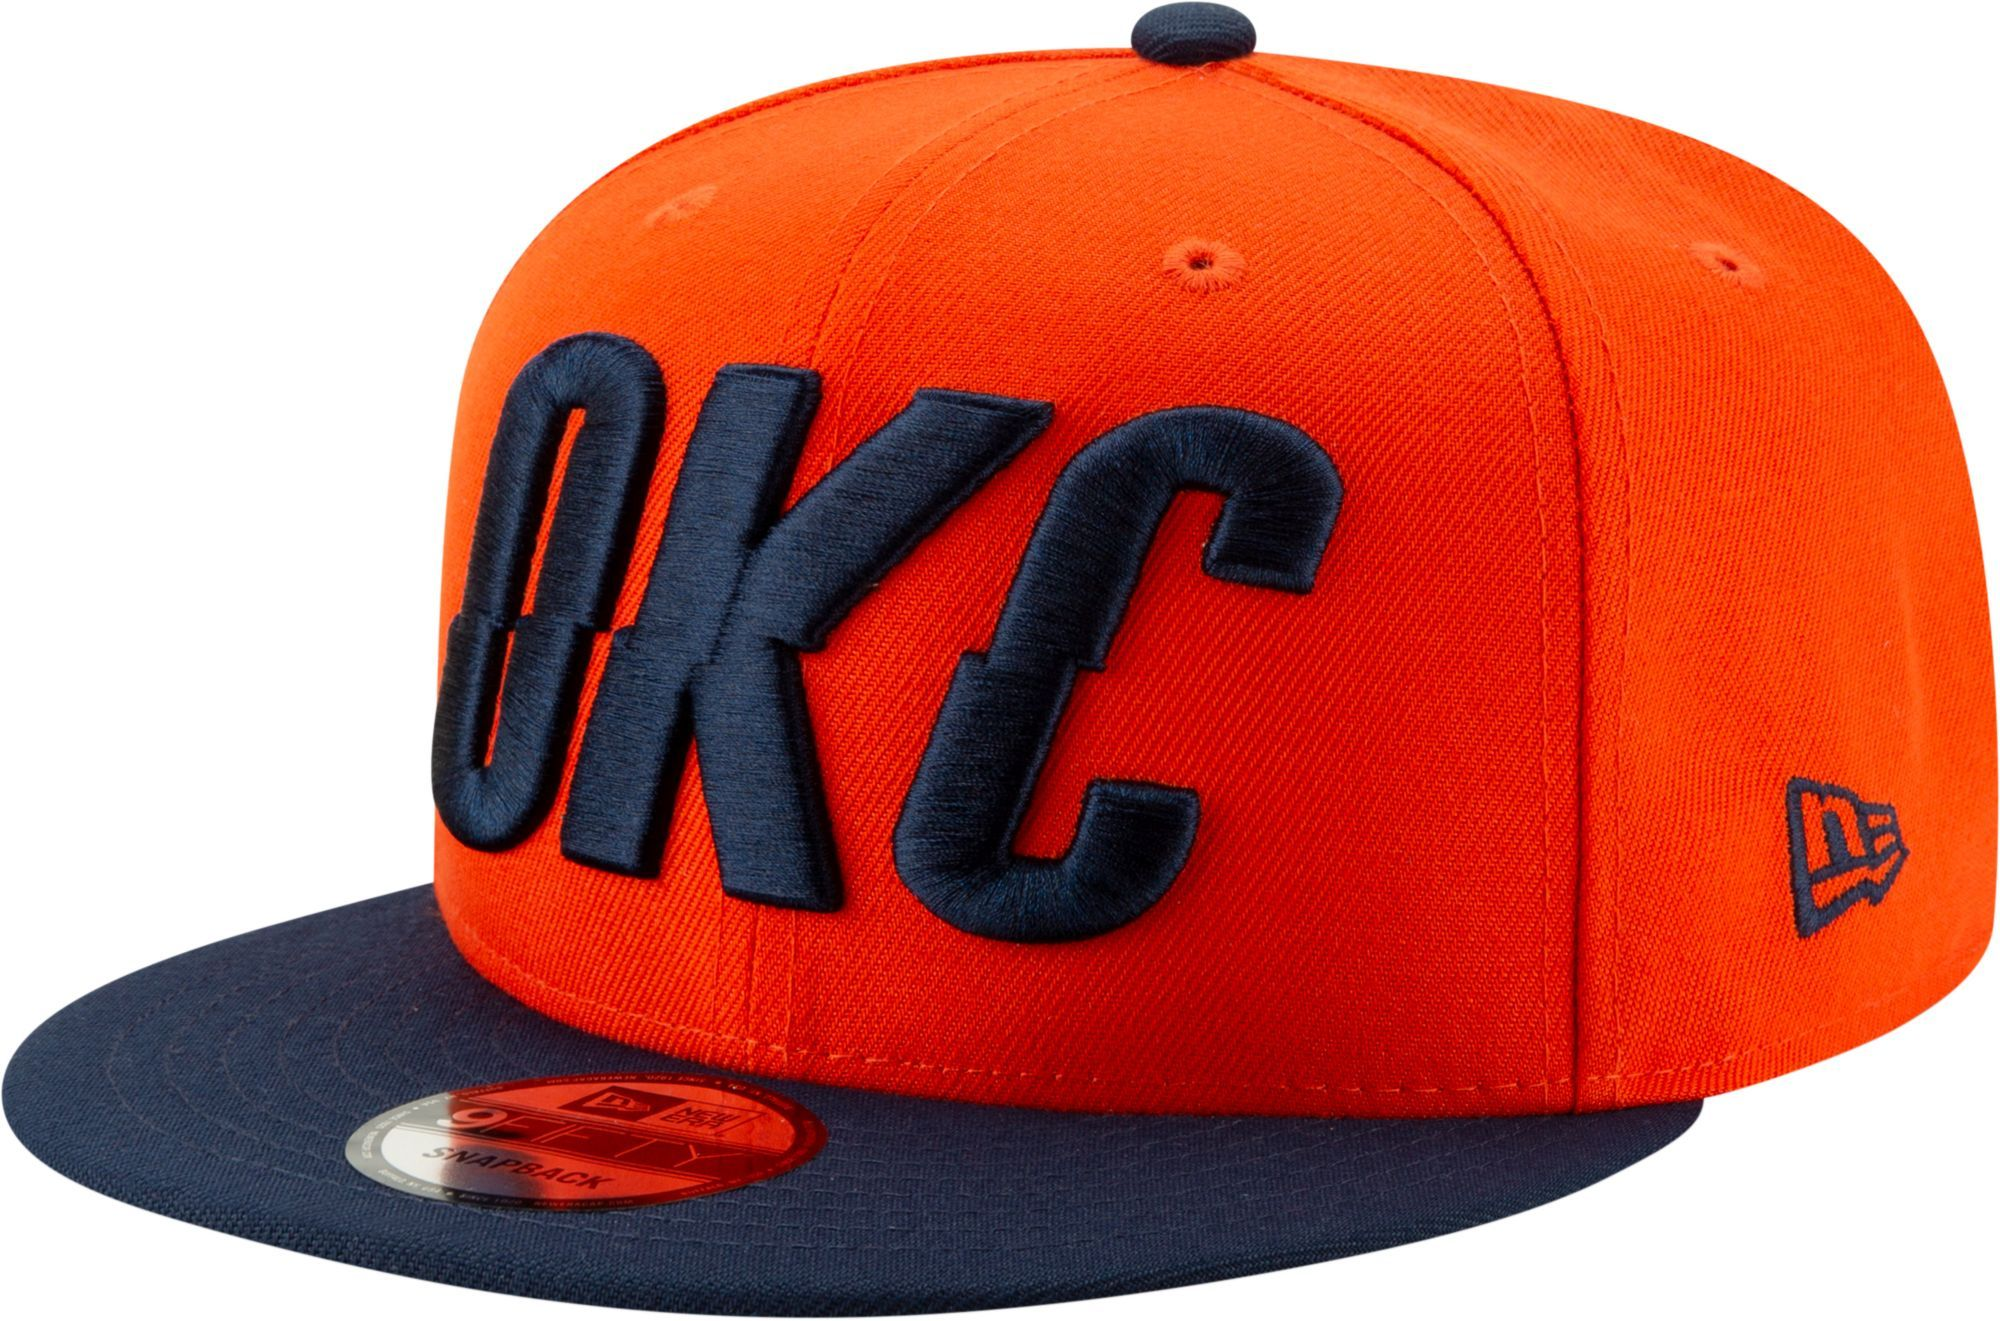 reputable site 864fd c6b2c New Era Men s Oklahoma City Thunder 9Fifty Earned Edition Adjustable  Snapback Hat